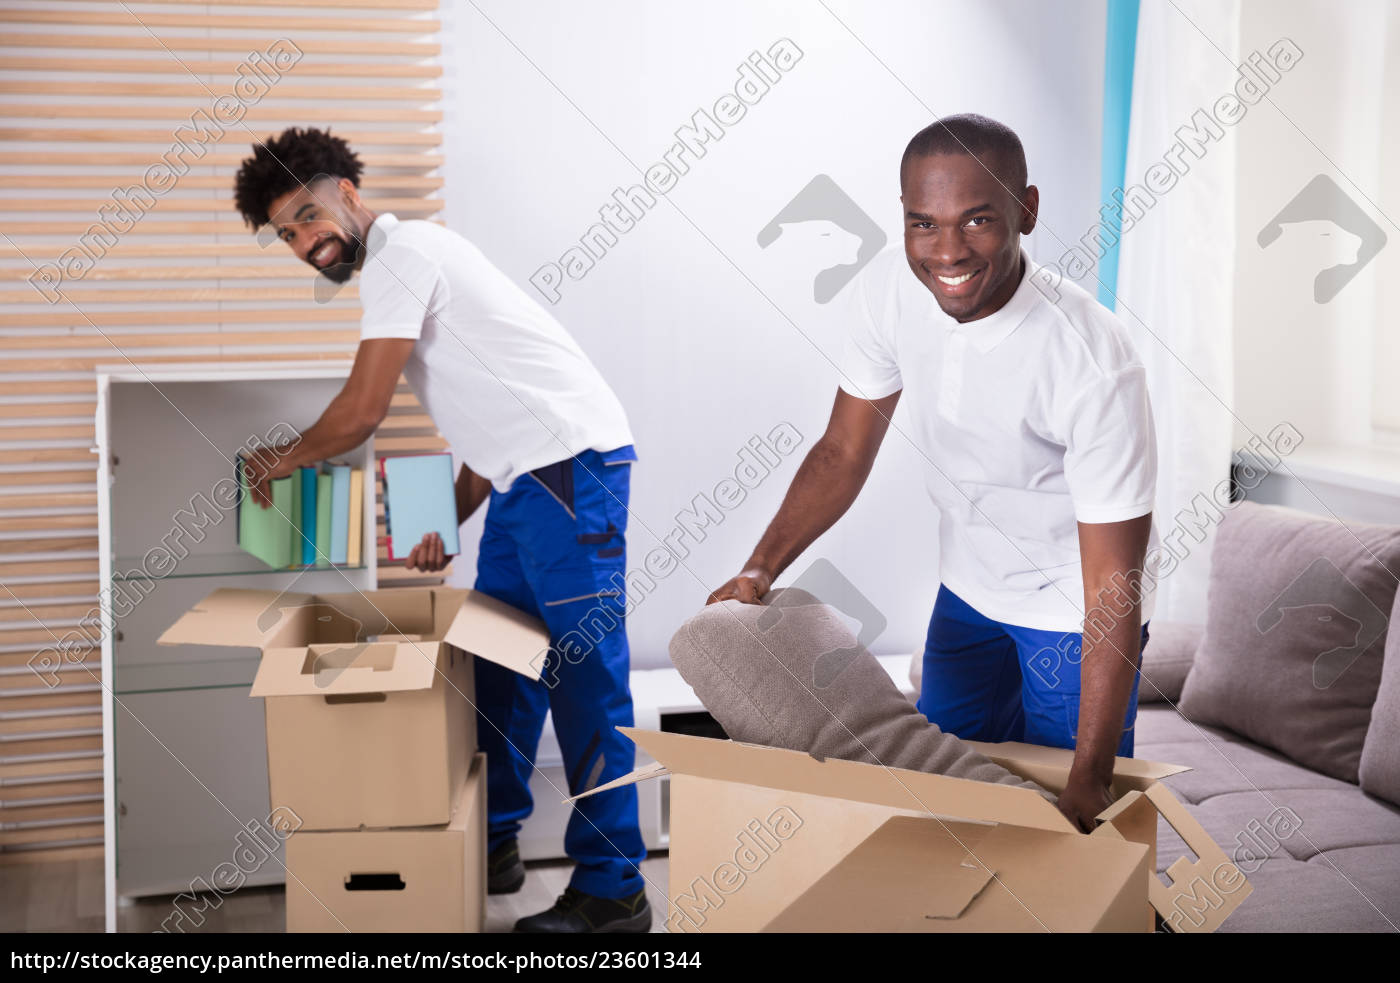 movers, unpacking, the, cardboard, boxes, in - 23601344